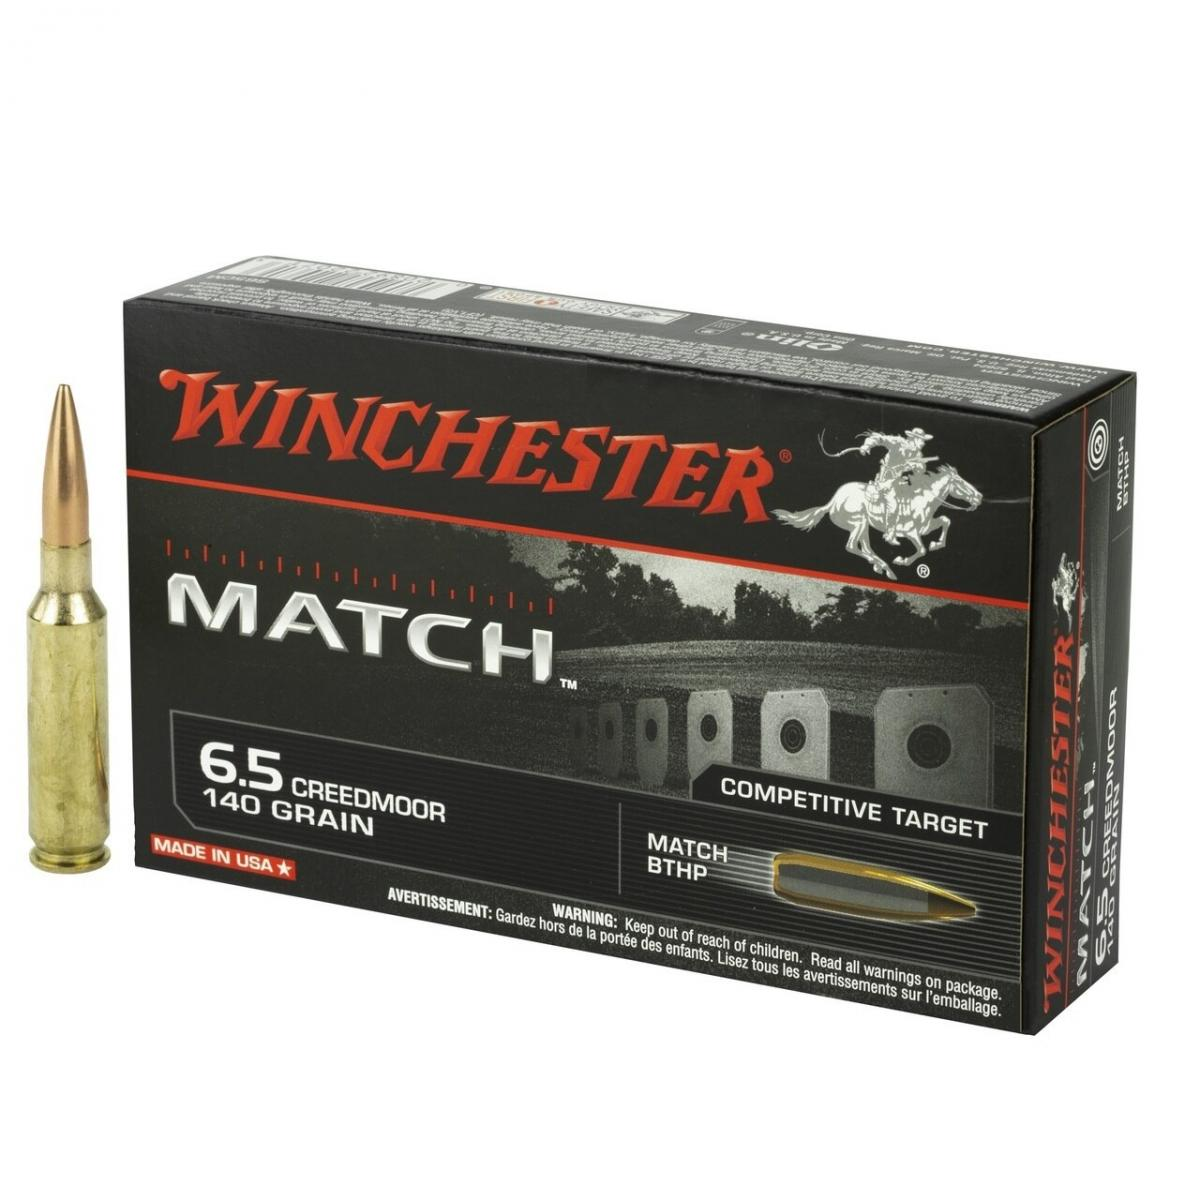 Cartouches WINCHESTER 6.5 CREEDMORE  140 grs Match BTHP